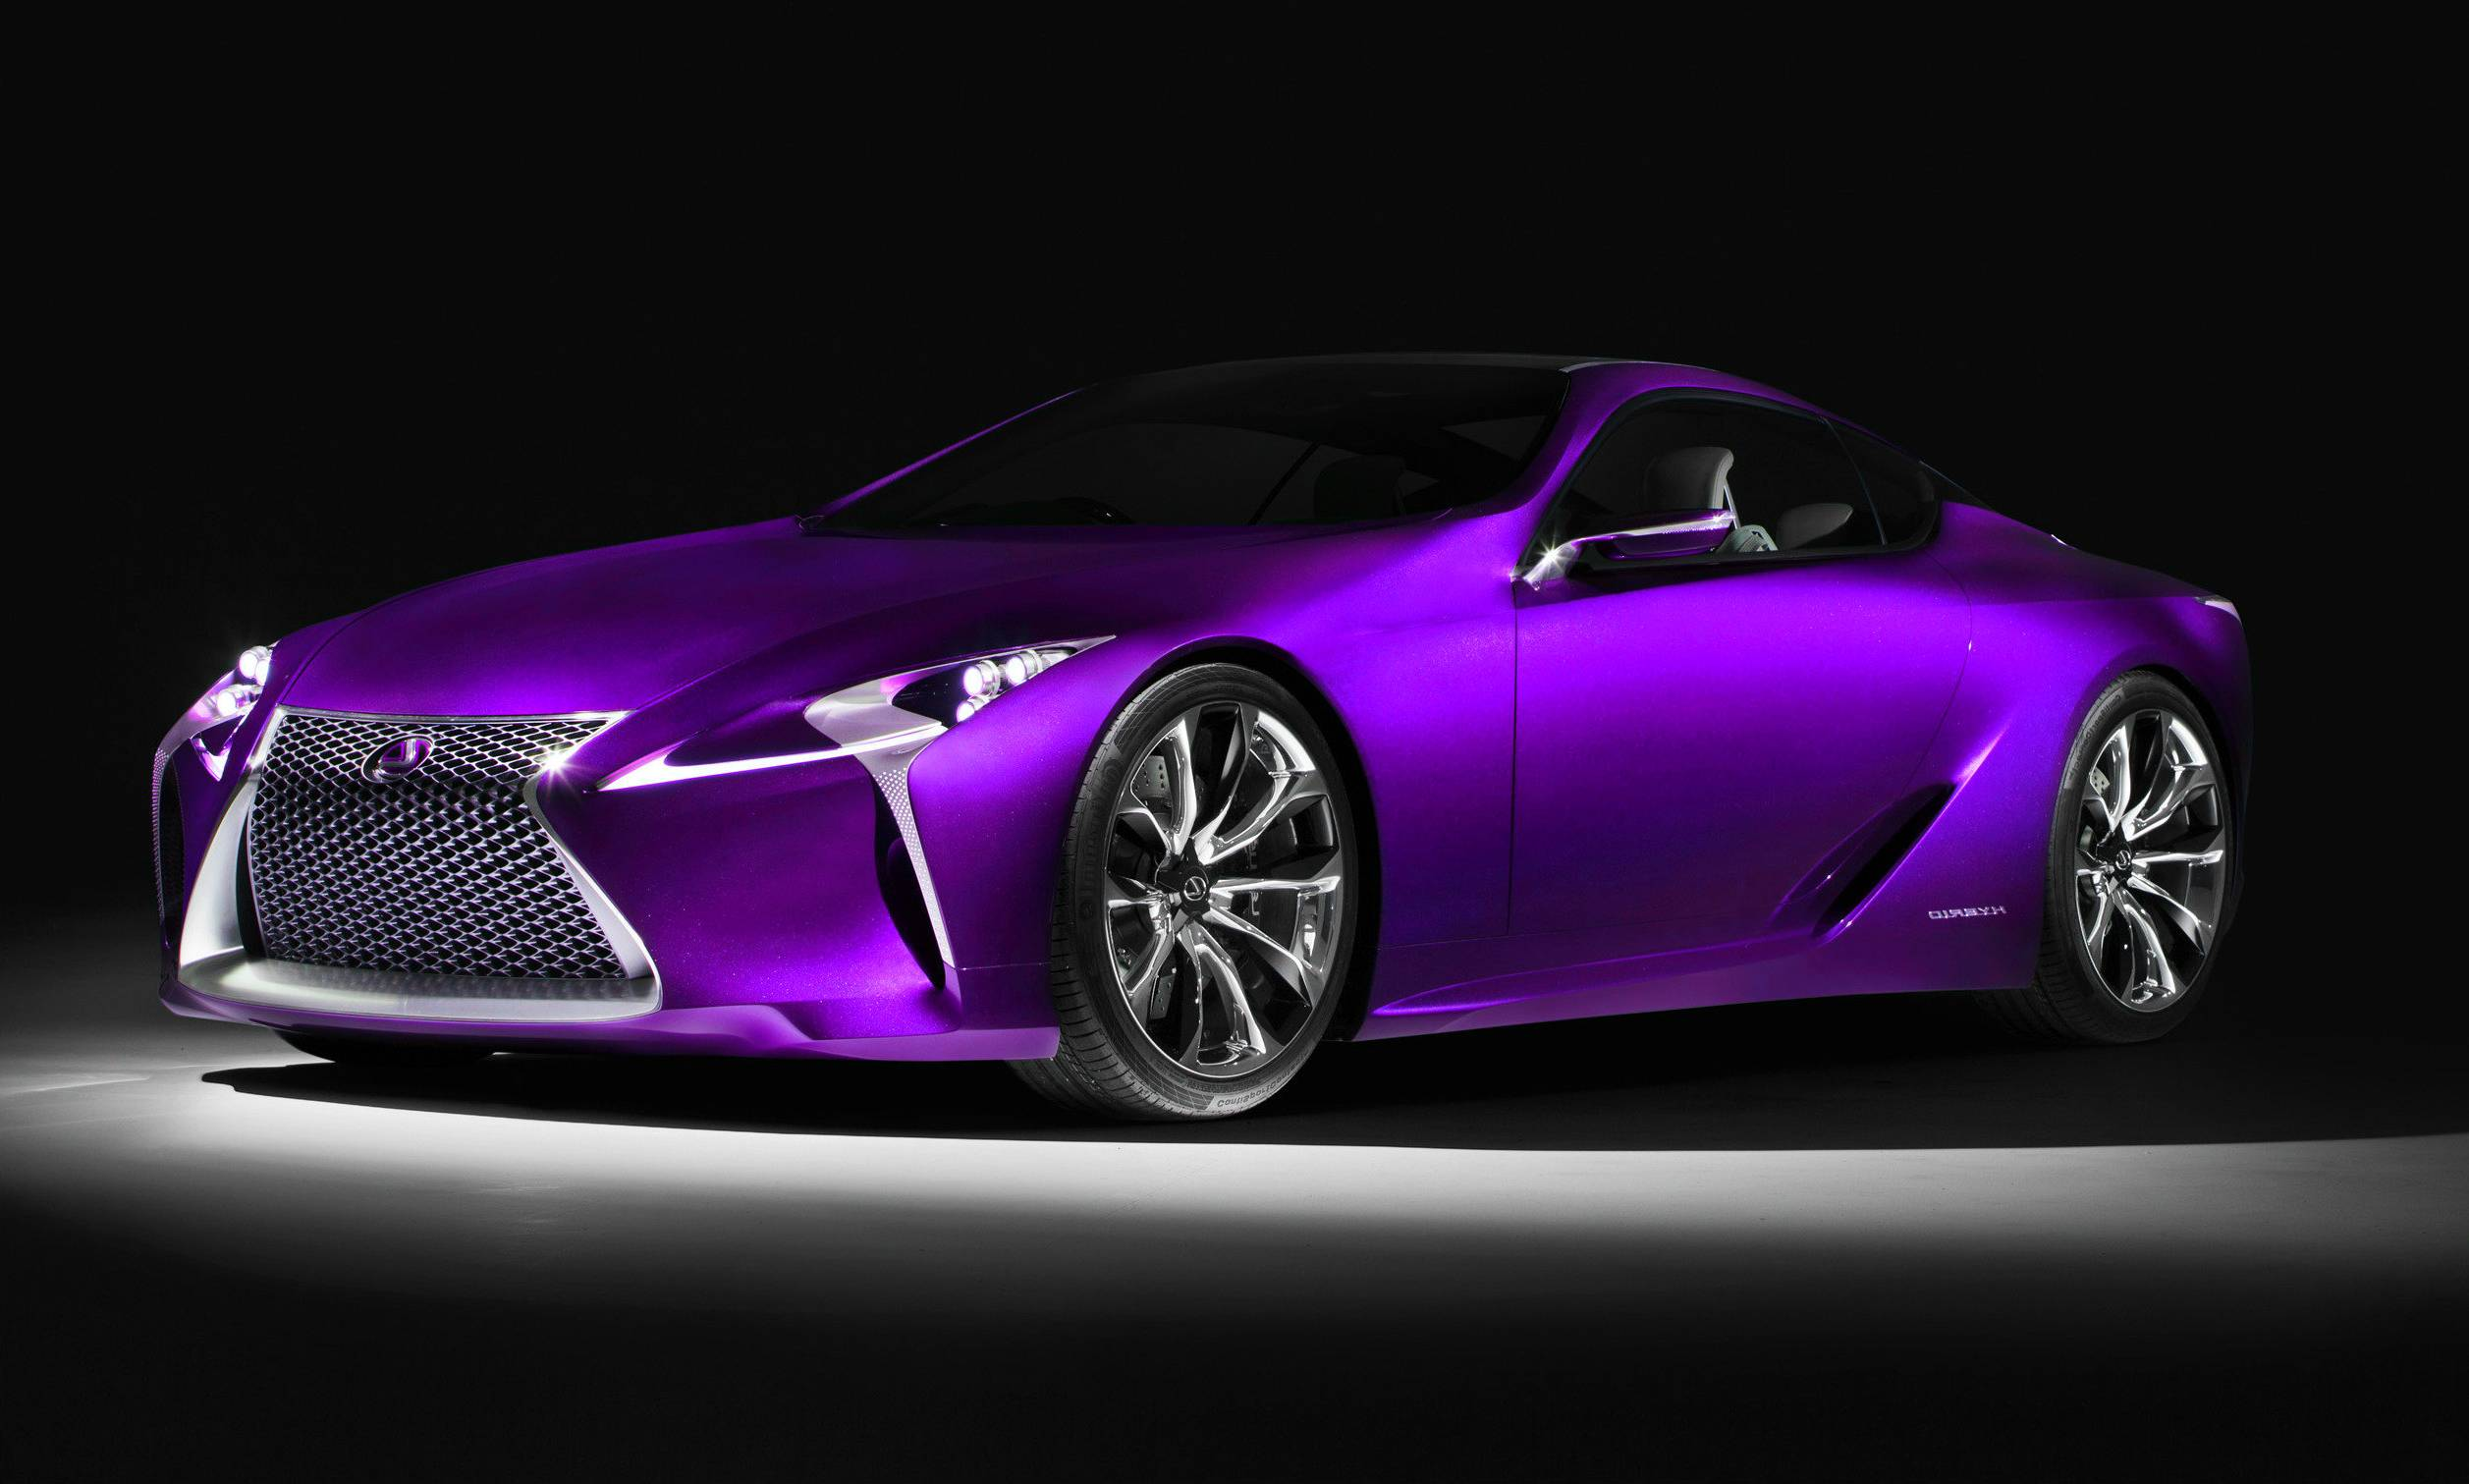 Hd Car Wallpapers For Android Tablets Magnificent Purple Car Wallpaper Full Hd Pictures